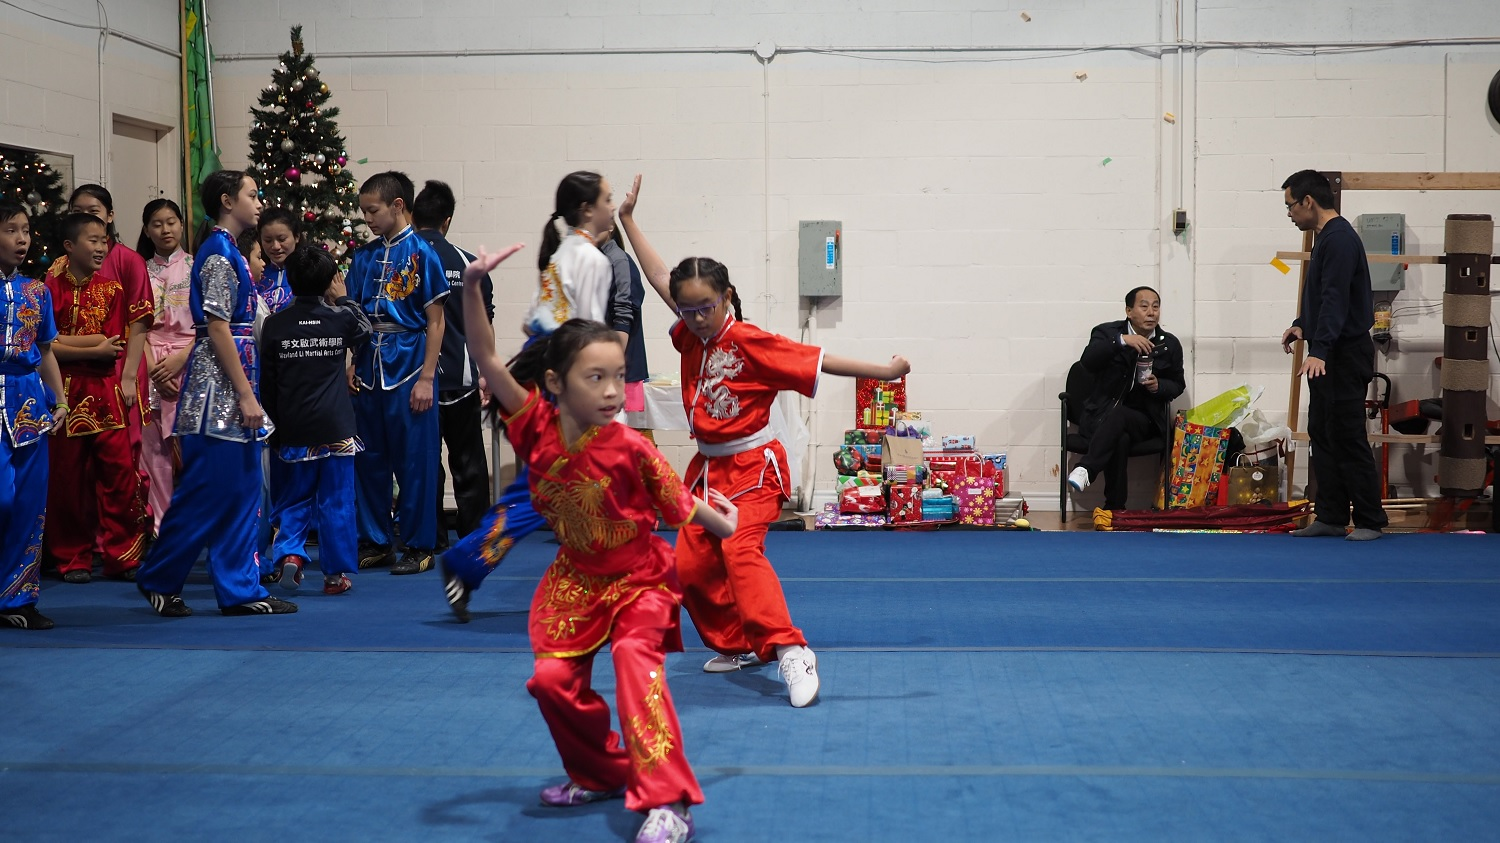 wayland-li-wushu-canada-ontario-toronto-classes-taolu-holiday-party-2017-24.jpg